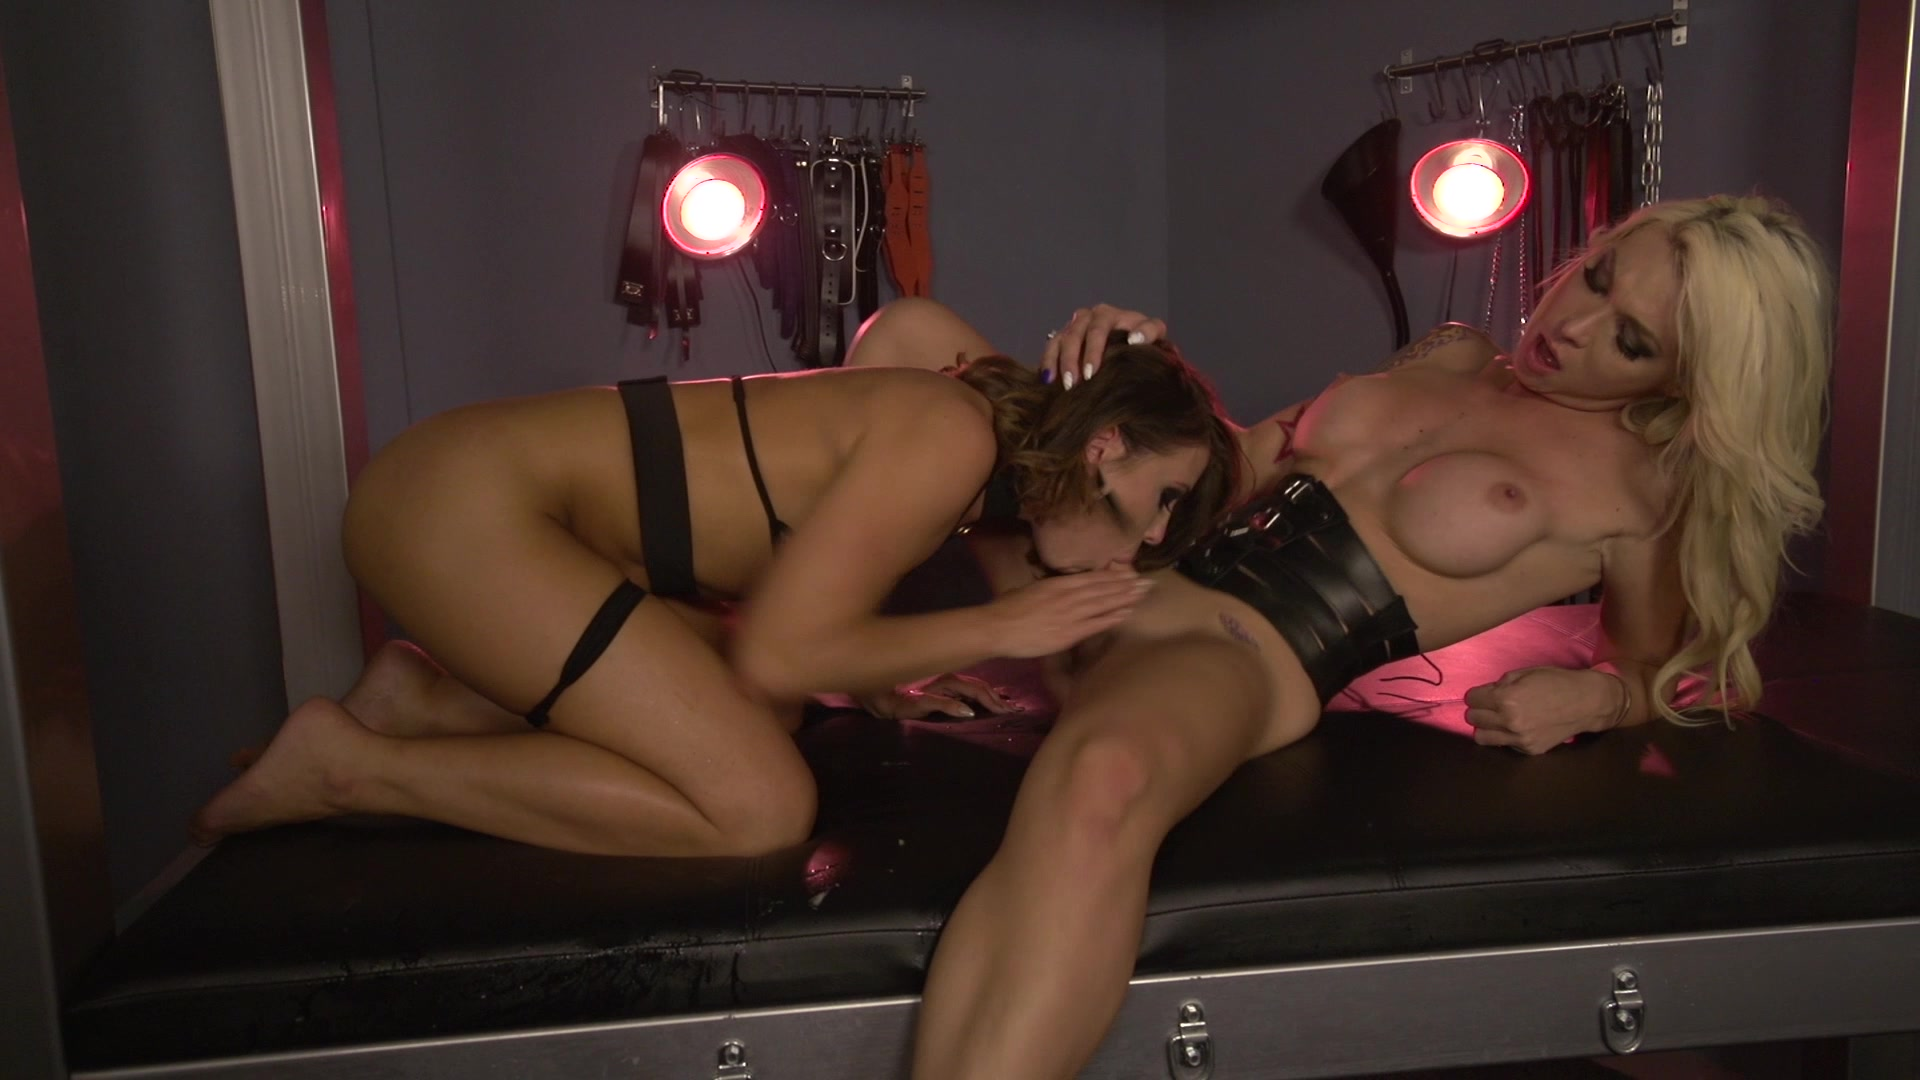 Scene with Adriana Chechik and Aubrey Kate - image 11 out of 20